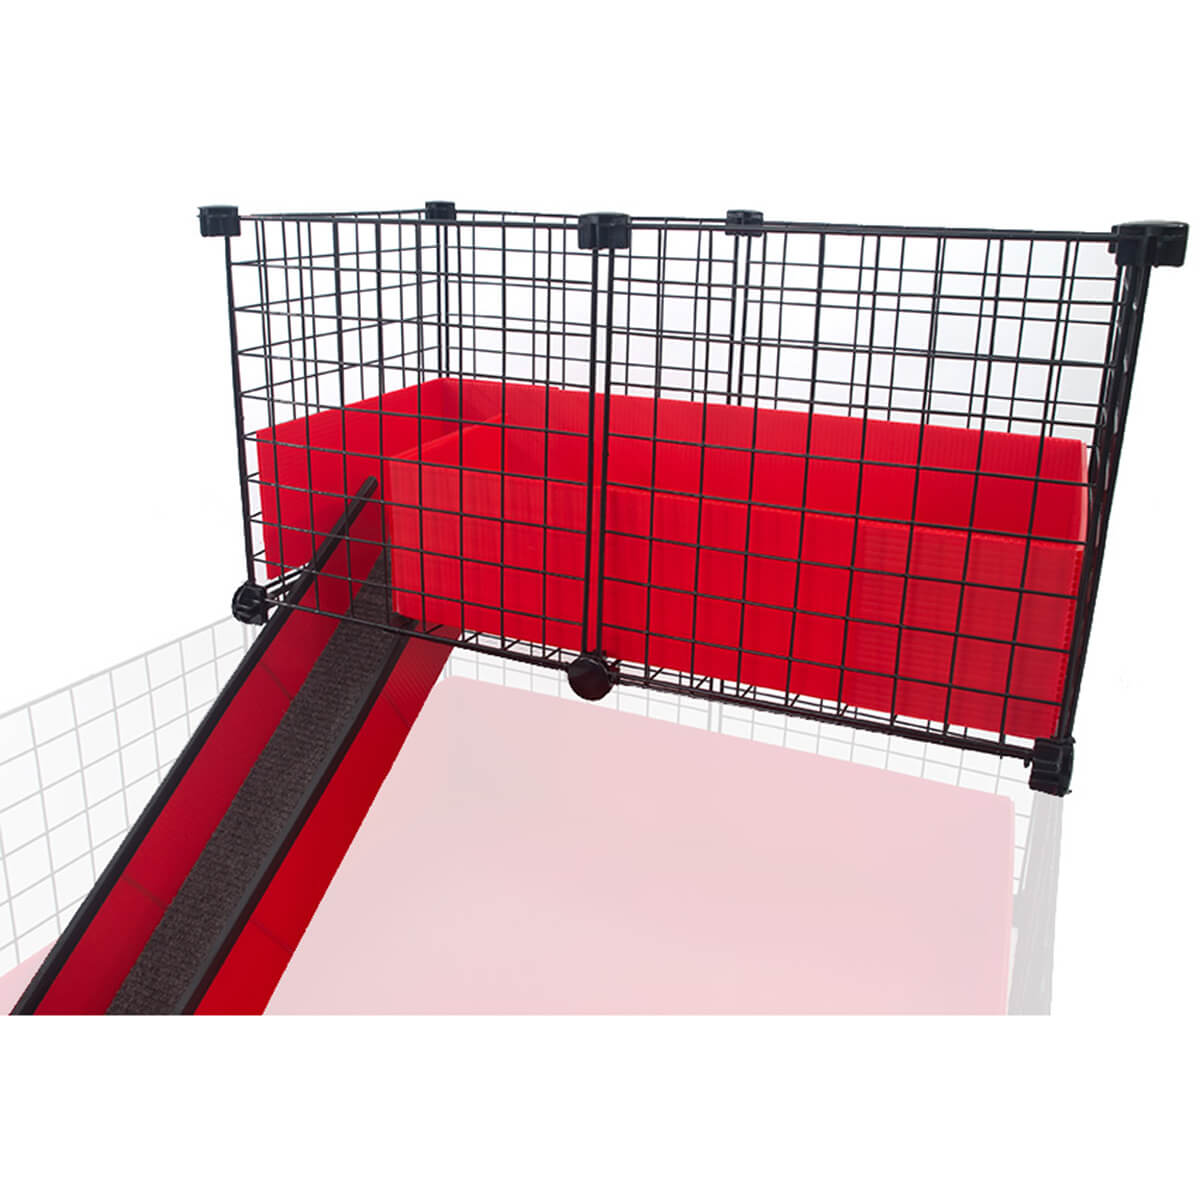 Narrow loft with ramp lofts c c cages for guinea pigs for Coroplast guinea pig cage for sale